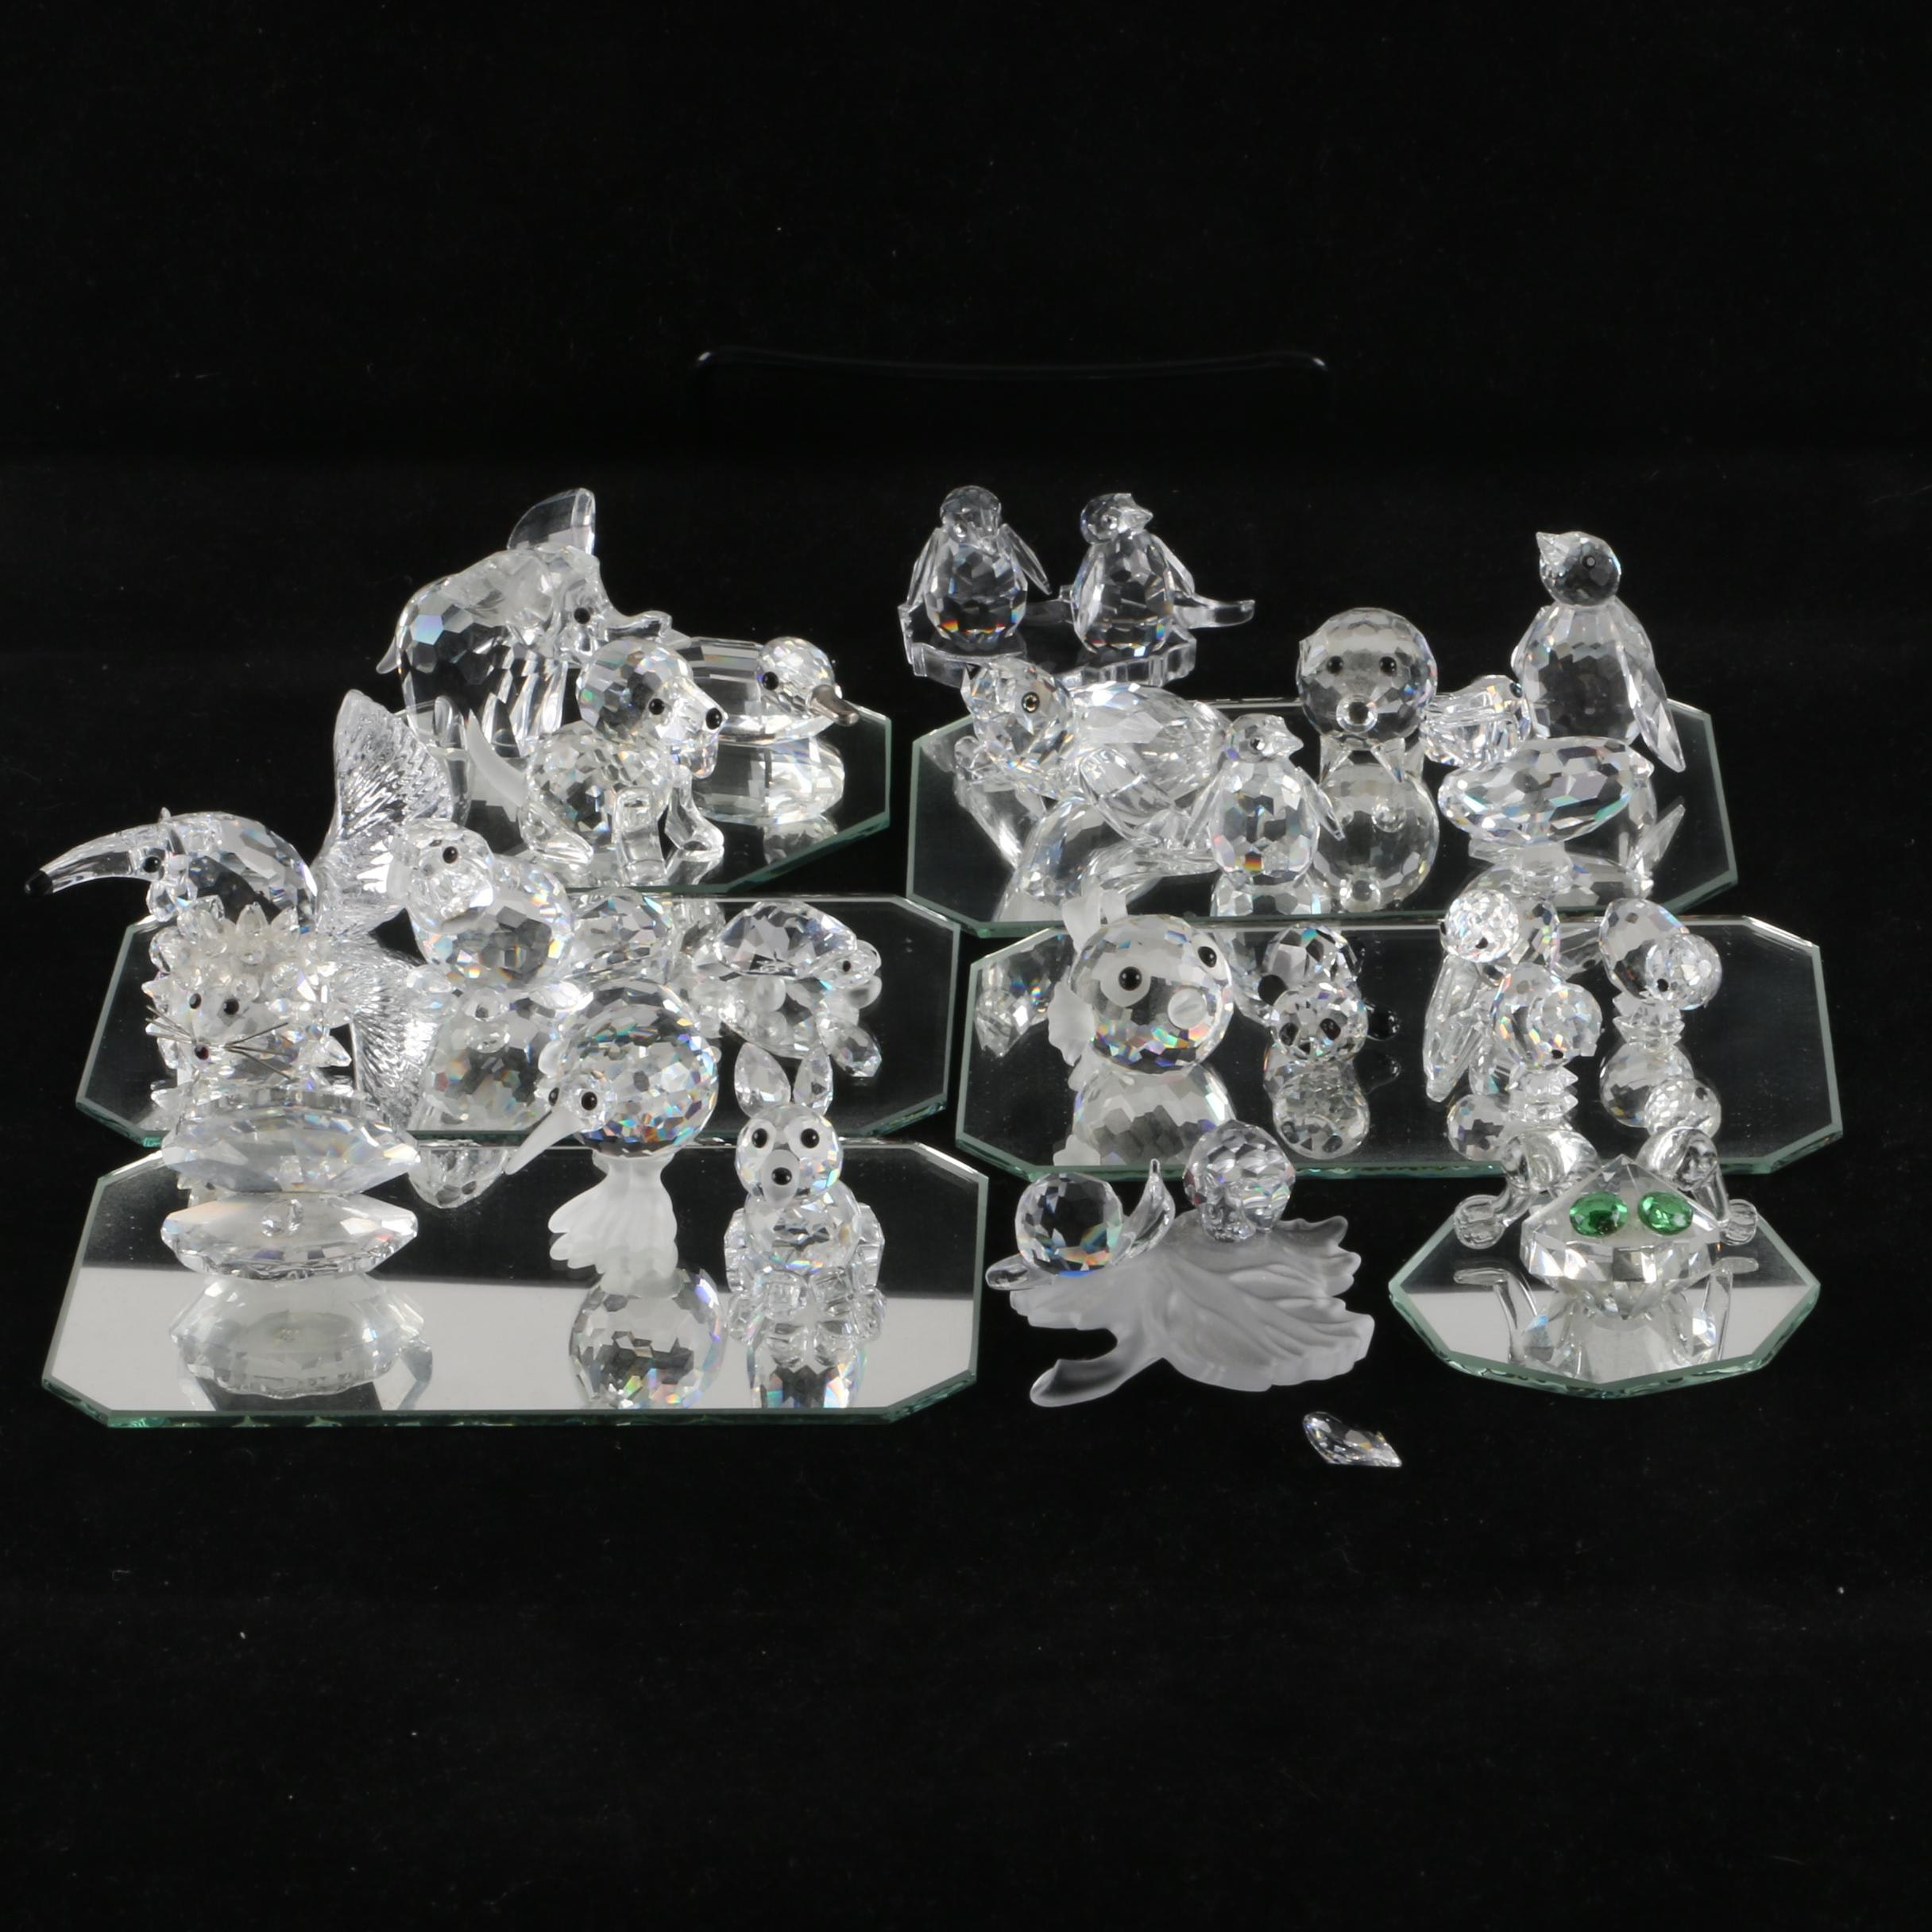 Swarovski Animal Figurines and Mirrored Stands